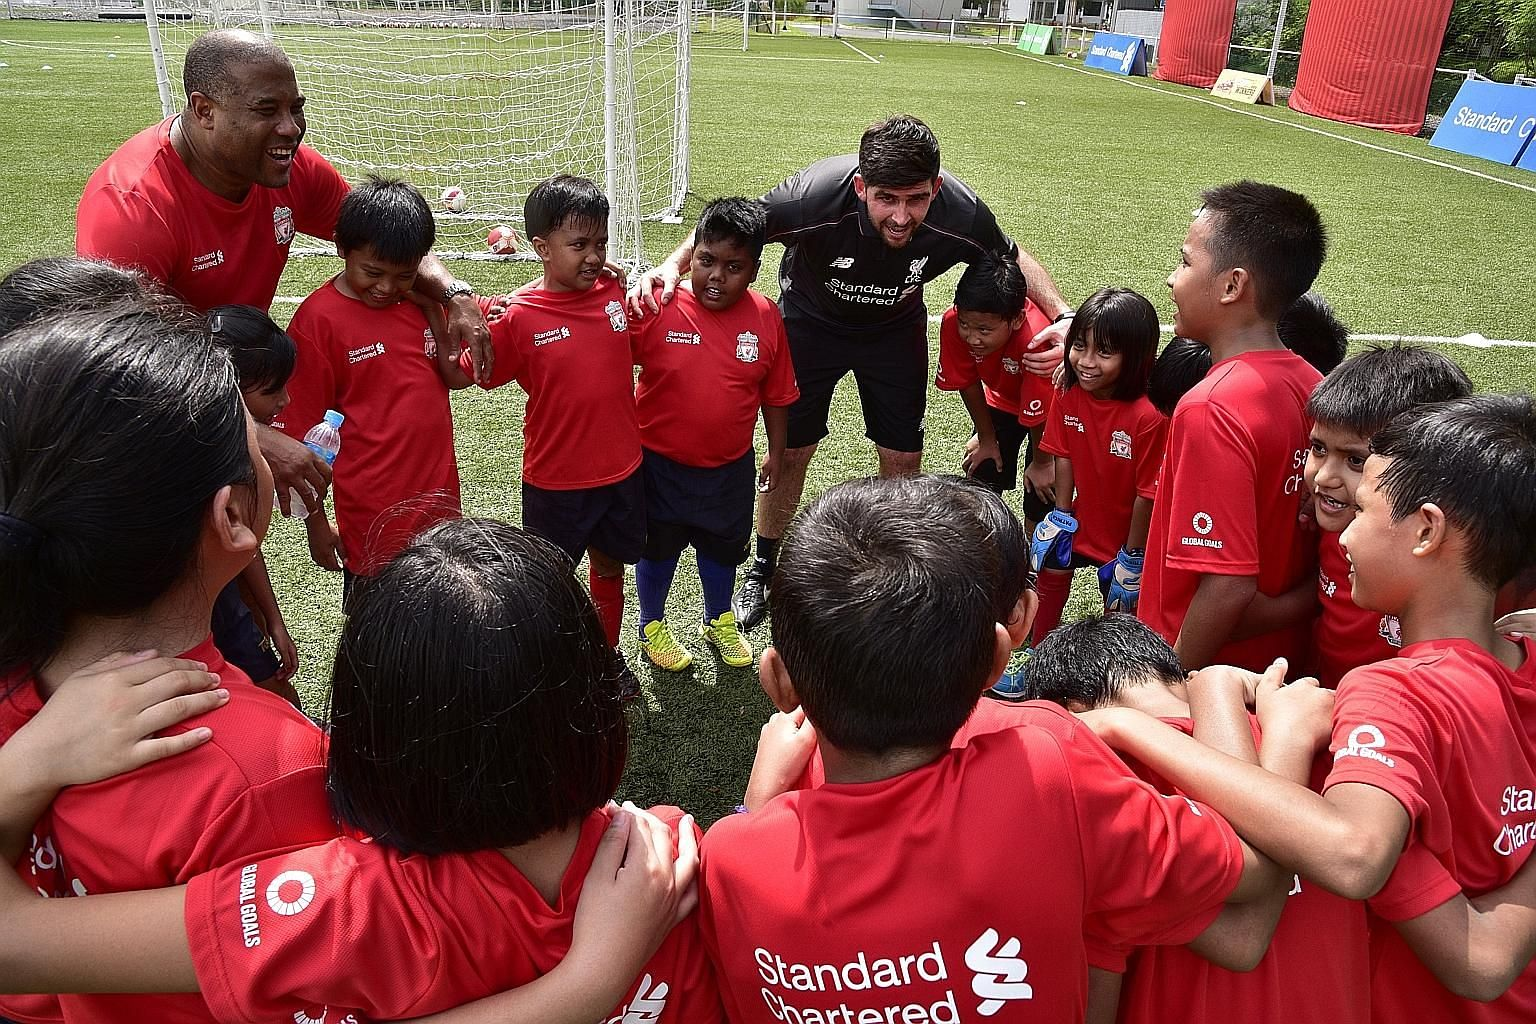 John Barnes during a training session at the Home United Youth Academy for about 100 youth yesterday.